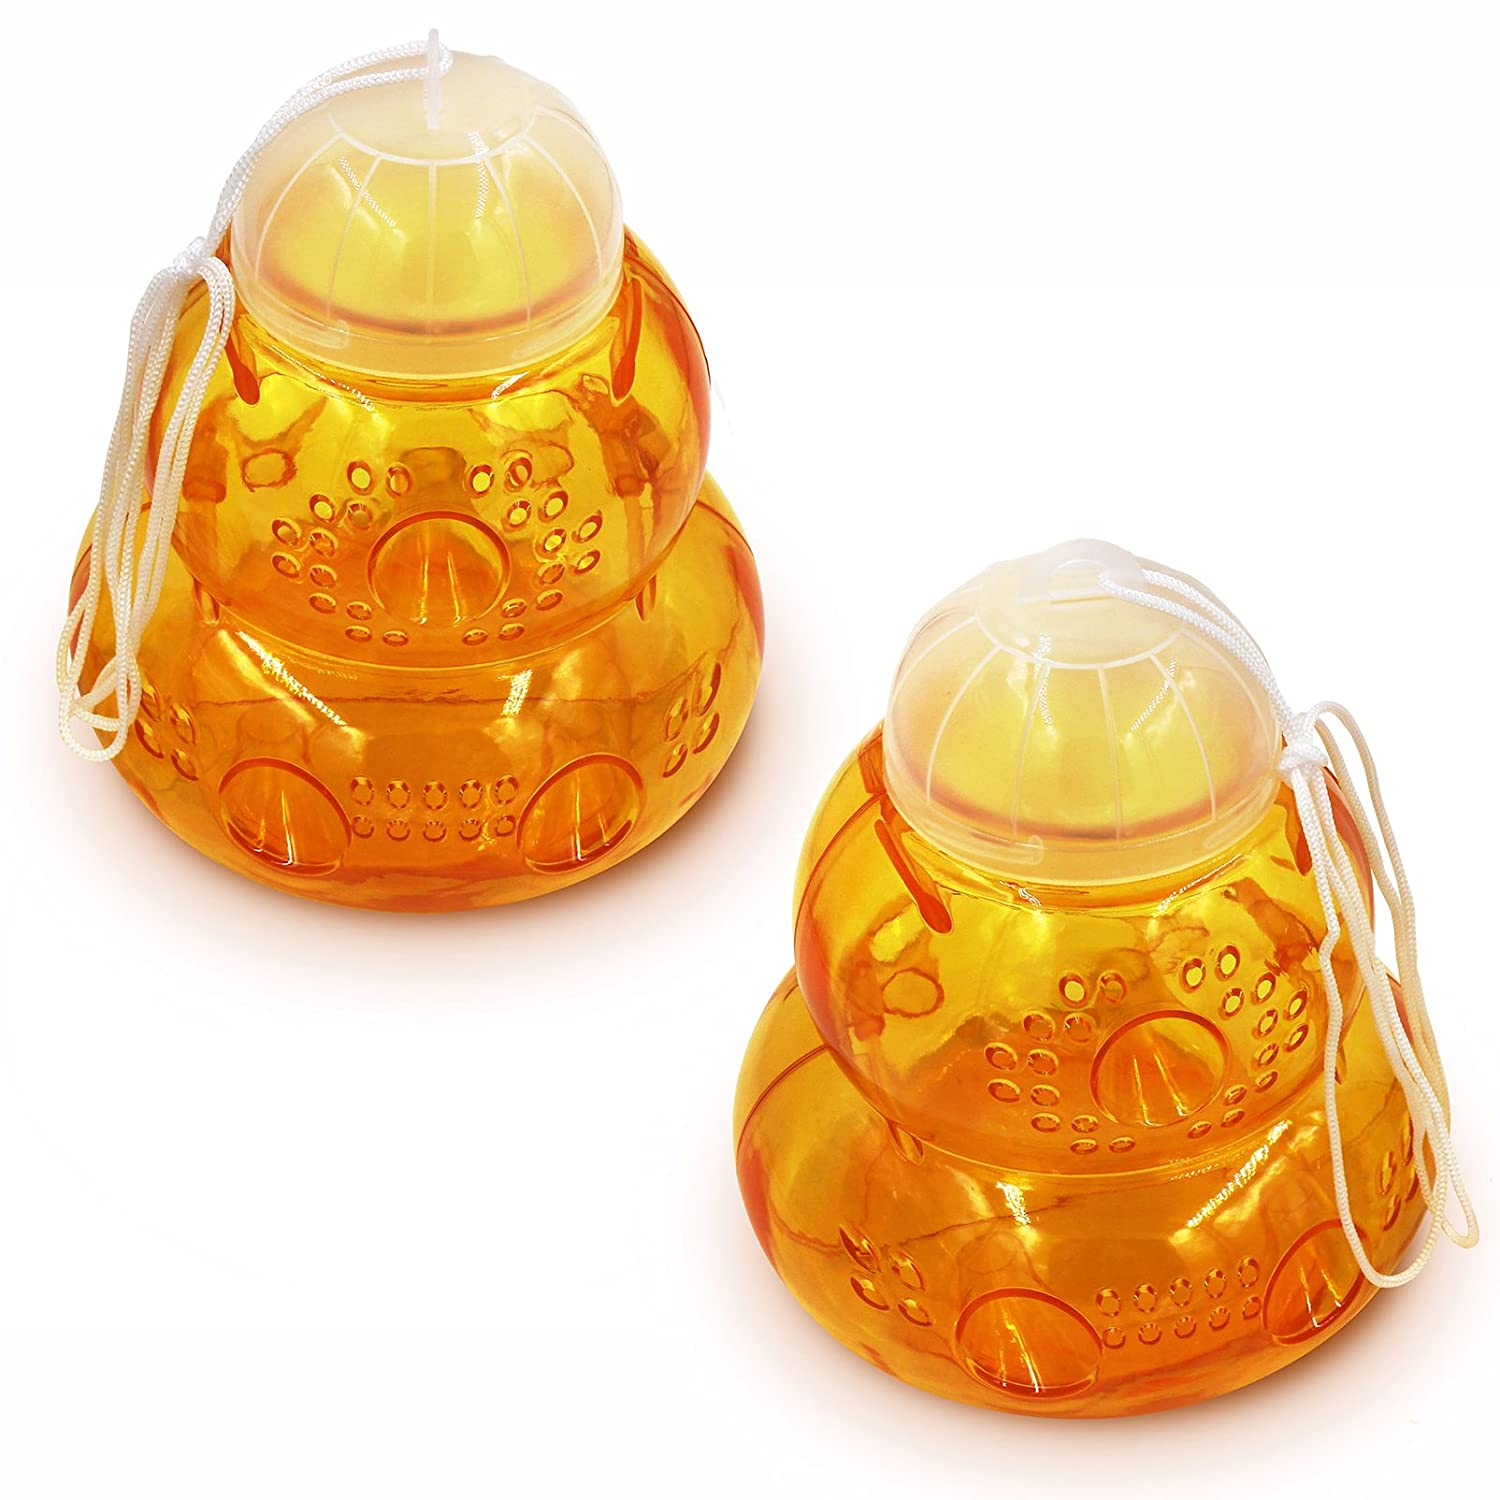 EN-GARD Wasp Traps (2 pack) - Attract & Kill Wasps, Yellow Jackets & Hornets - Hang Outdoors With Attractant Bait To Catch Stingers - Non-Toxic, Safe And Nature Friendly - Decorative Hive Design EG-HWT2